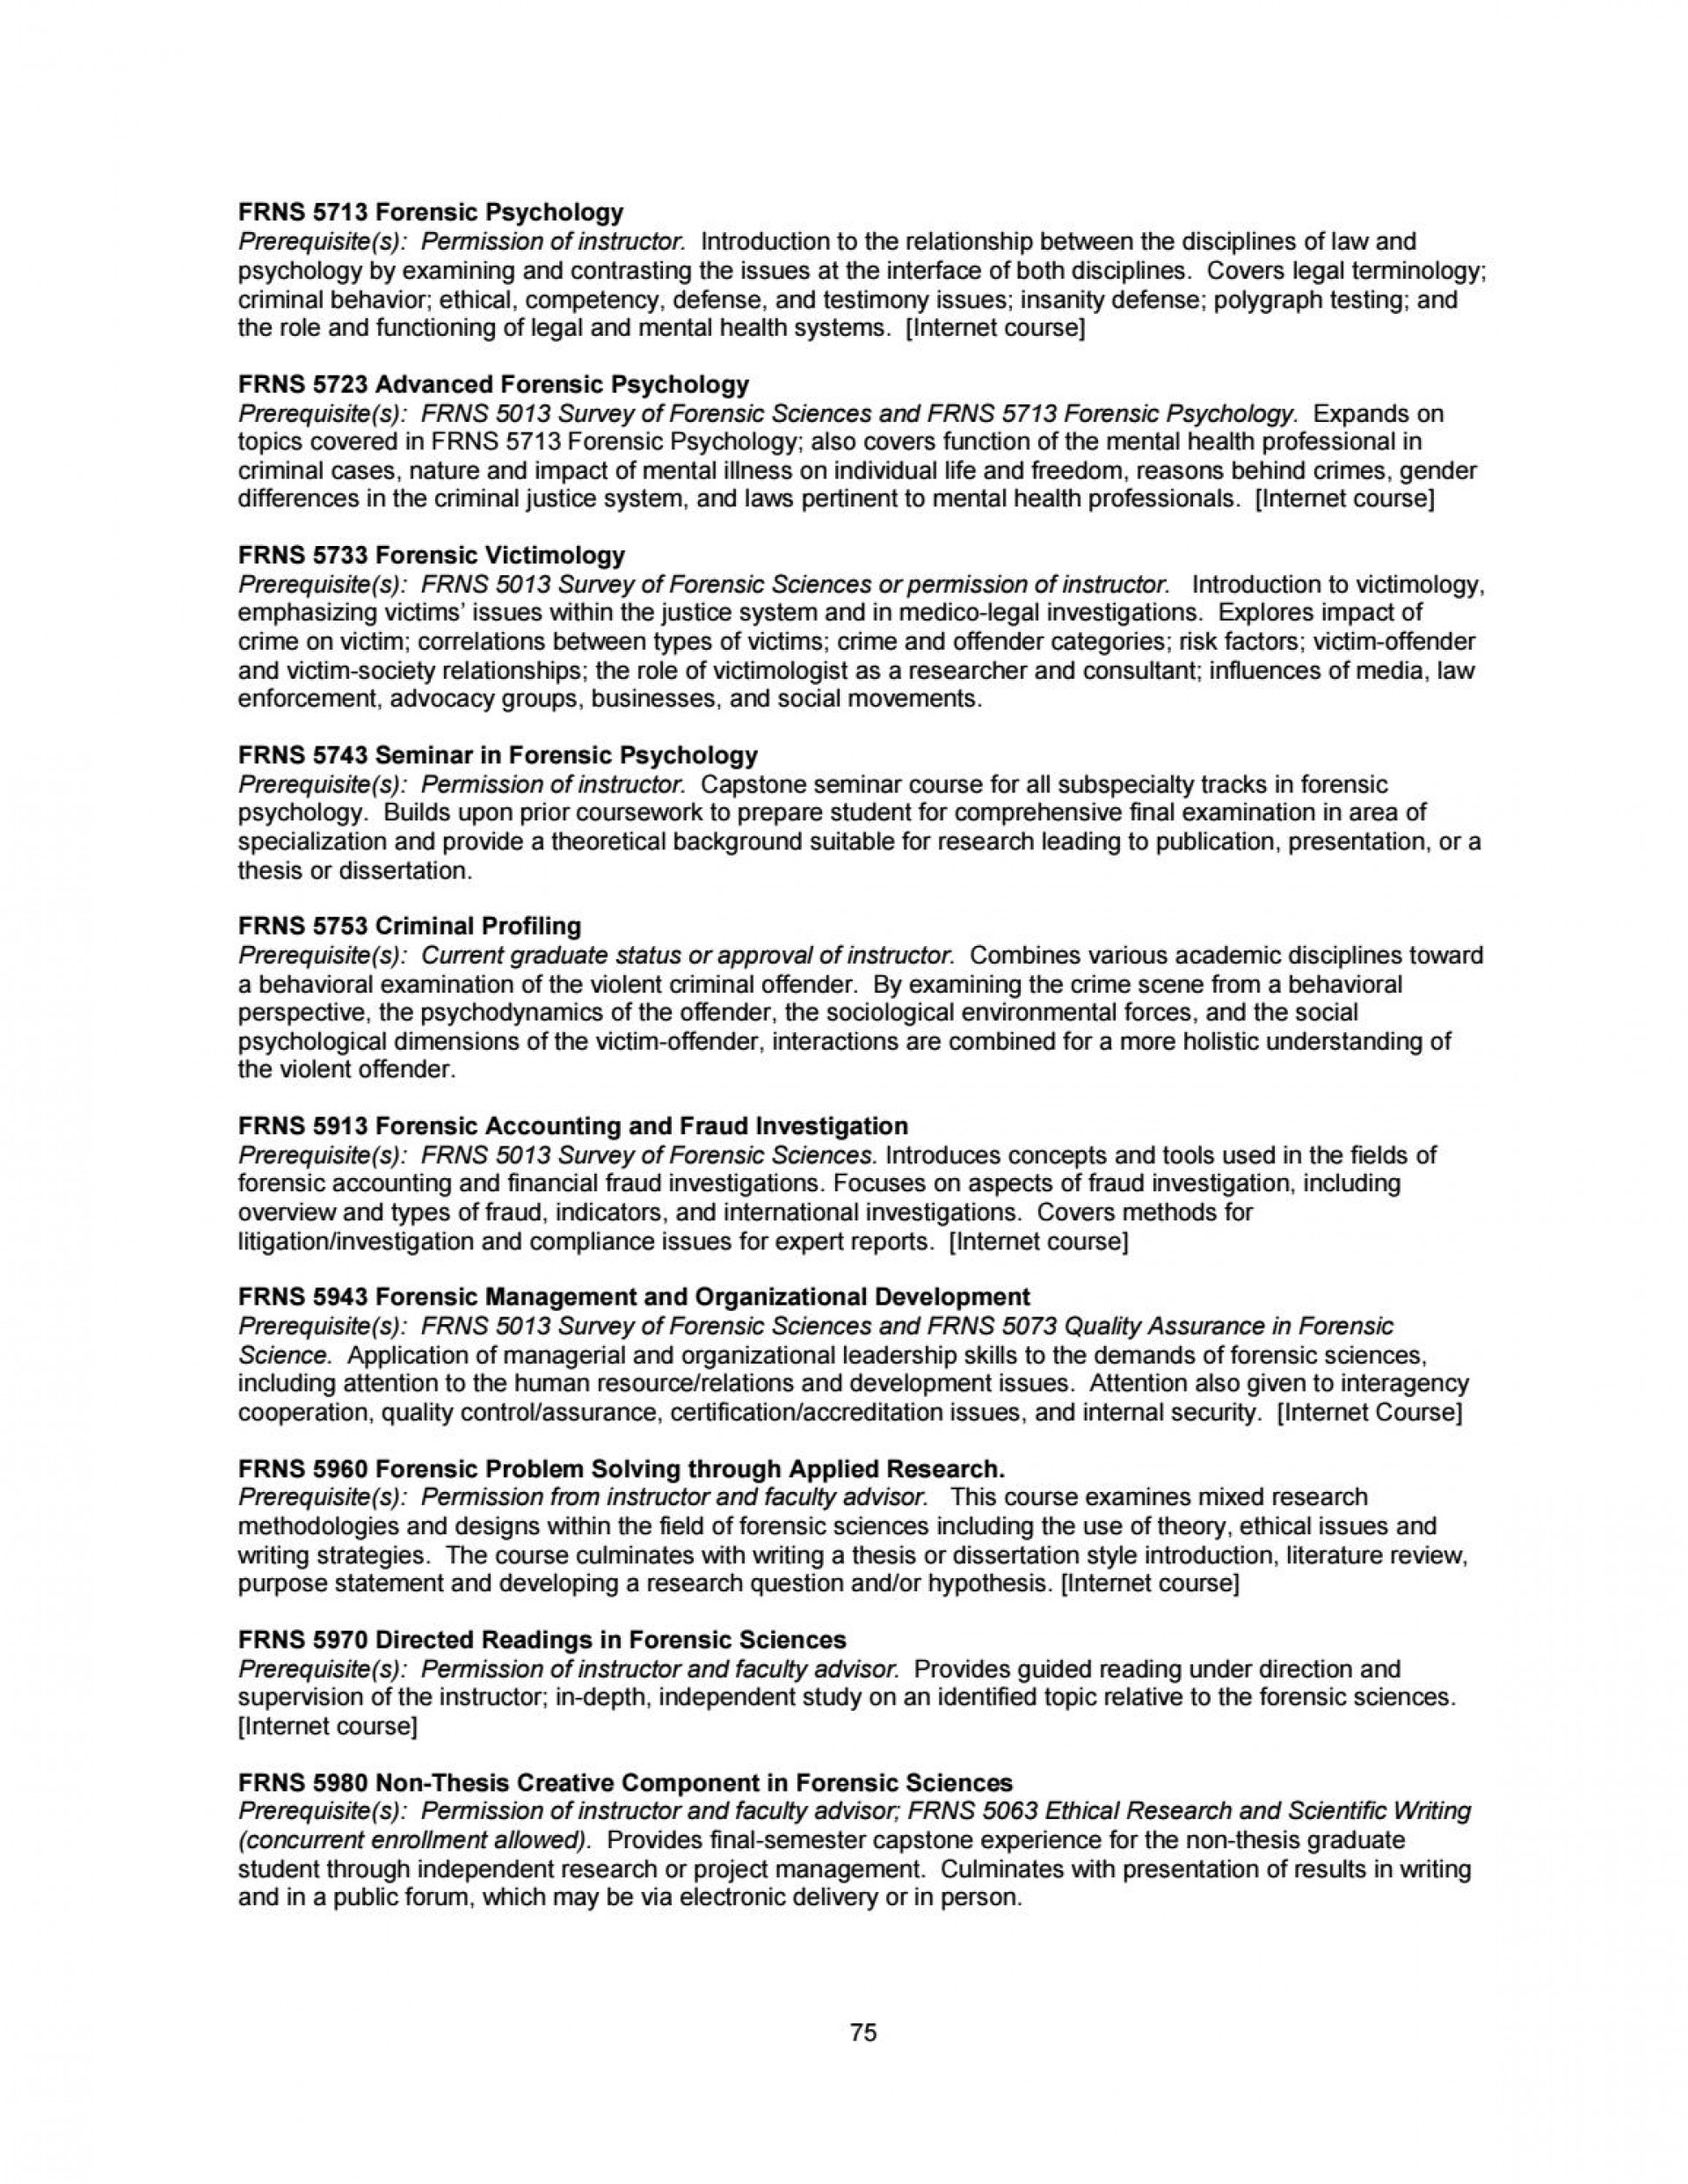 009 Research Paper Forensic Psychology Topics For Page 75 Unique 1920